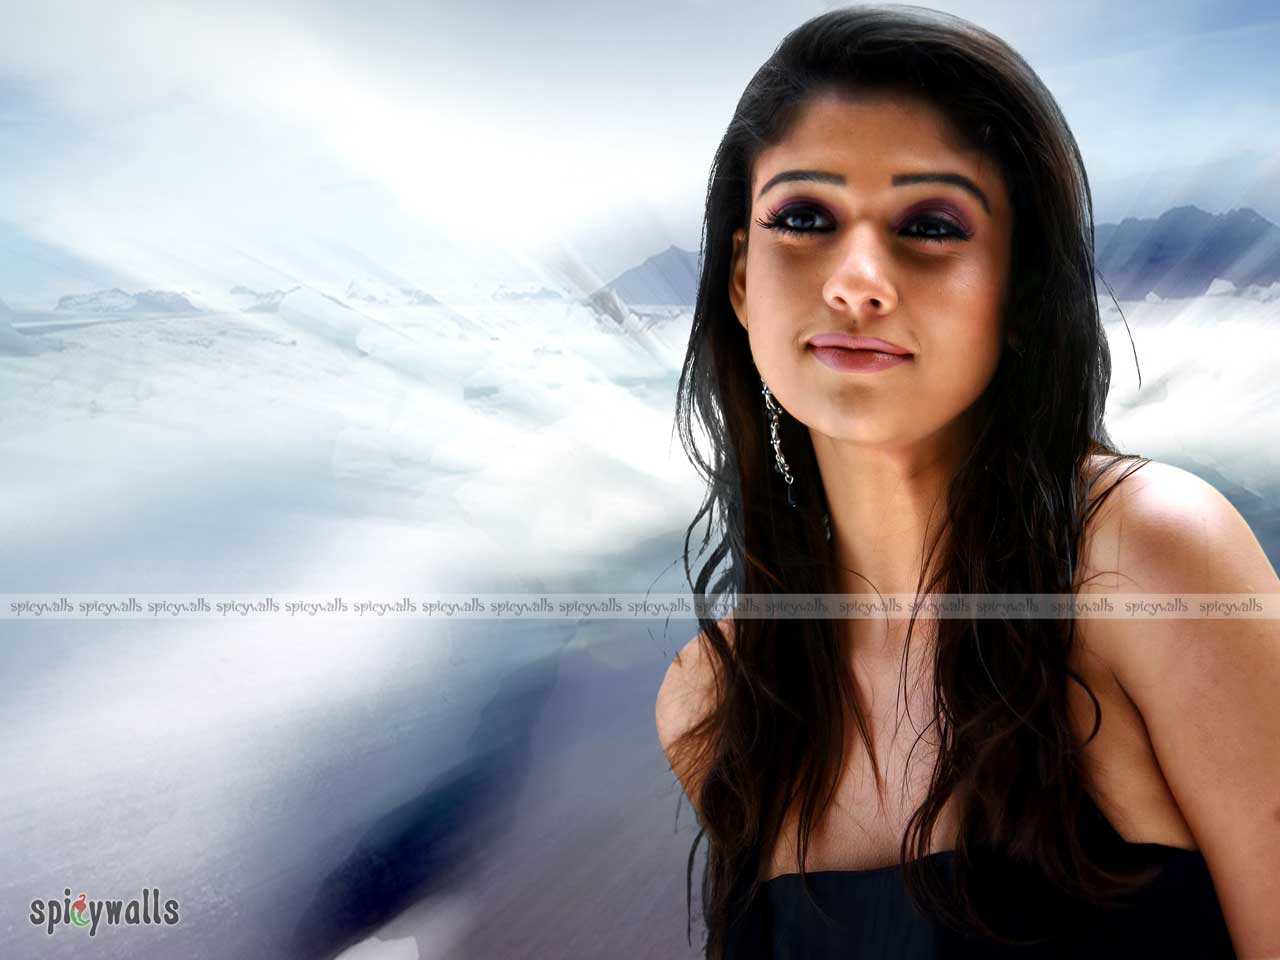 http://1.bp.blogspot.com/-N5E1Niy2vyw/Tmi36tjrtlI/AAAAAAAACd0/o9Ac4z6LsKA/s1600/actress_nayanthara_hairstyle_pictures+4.jpg